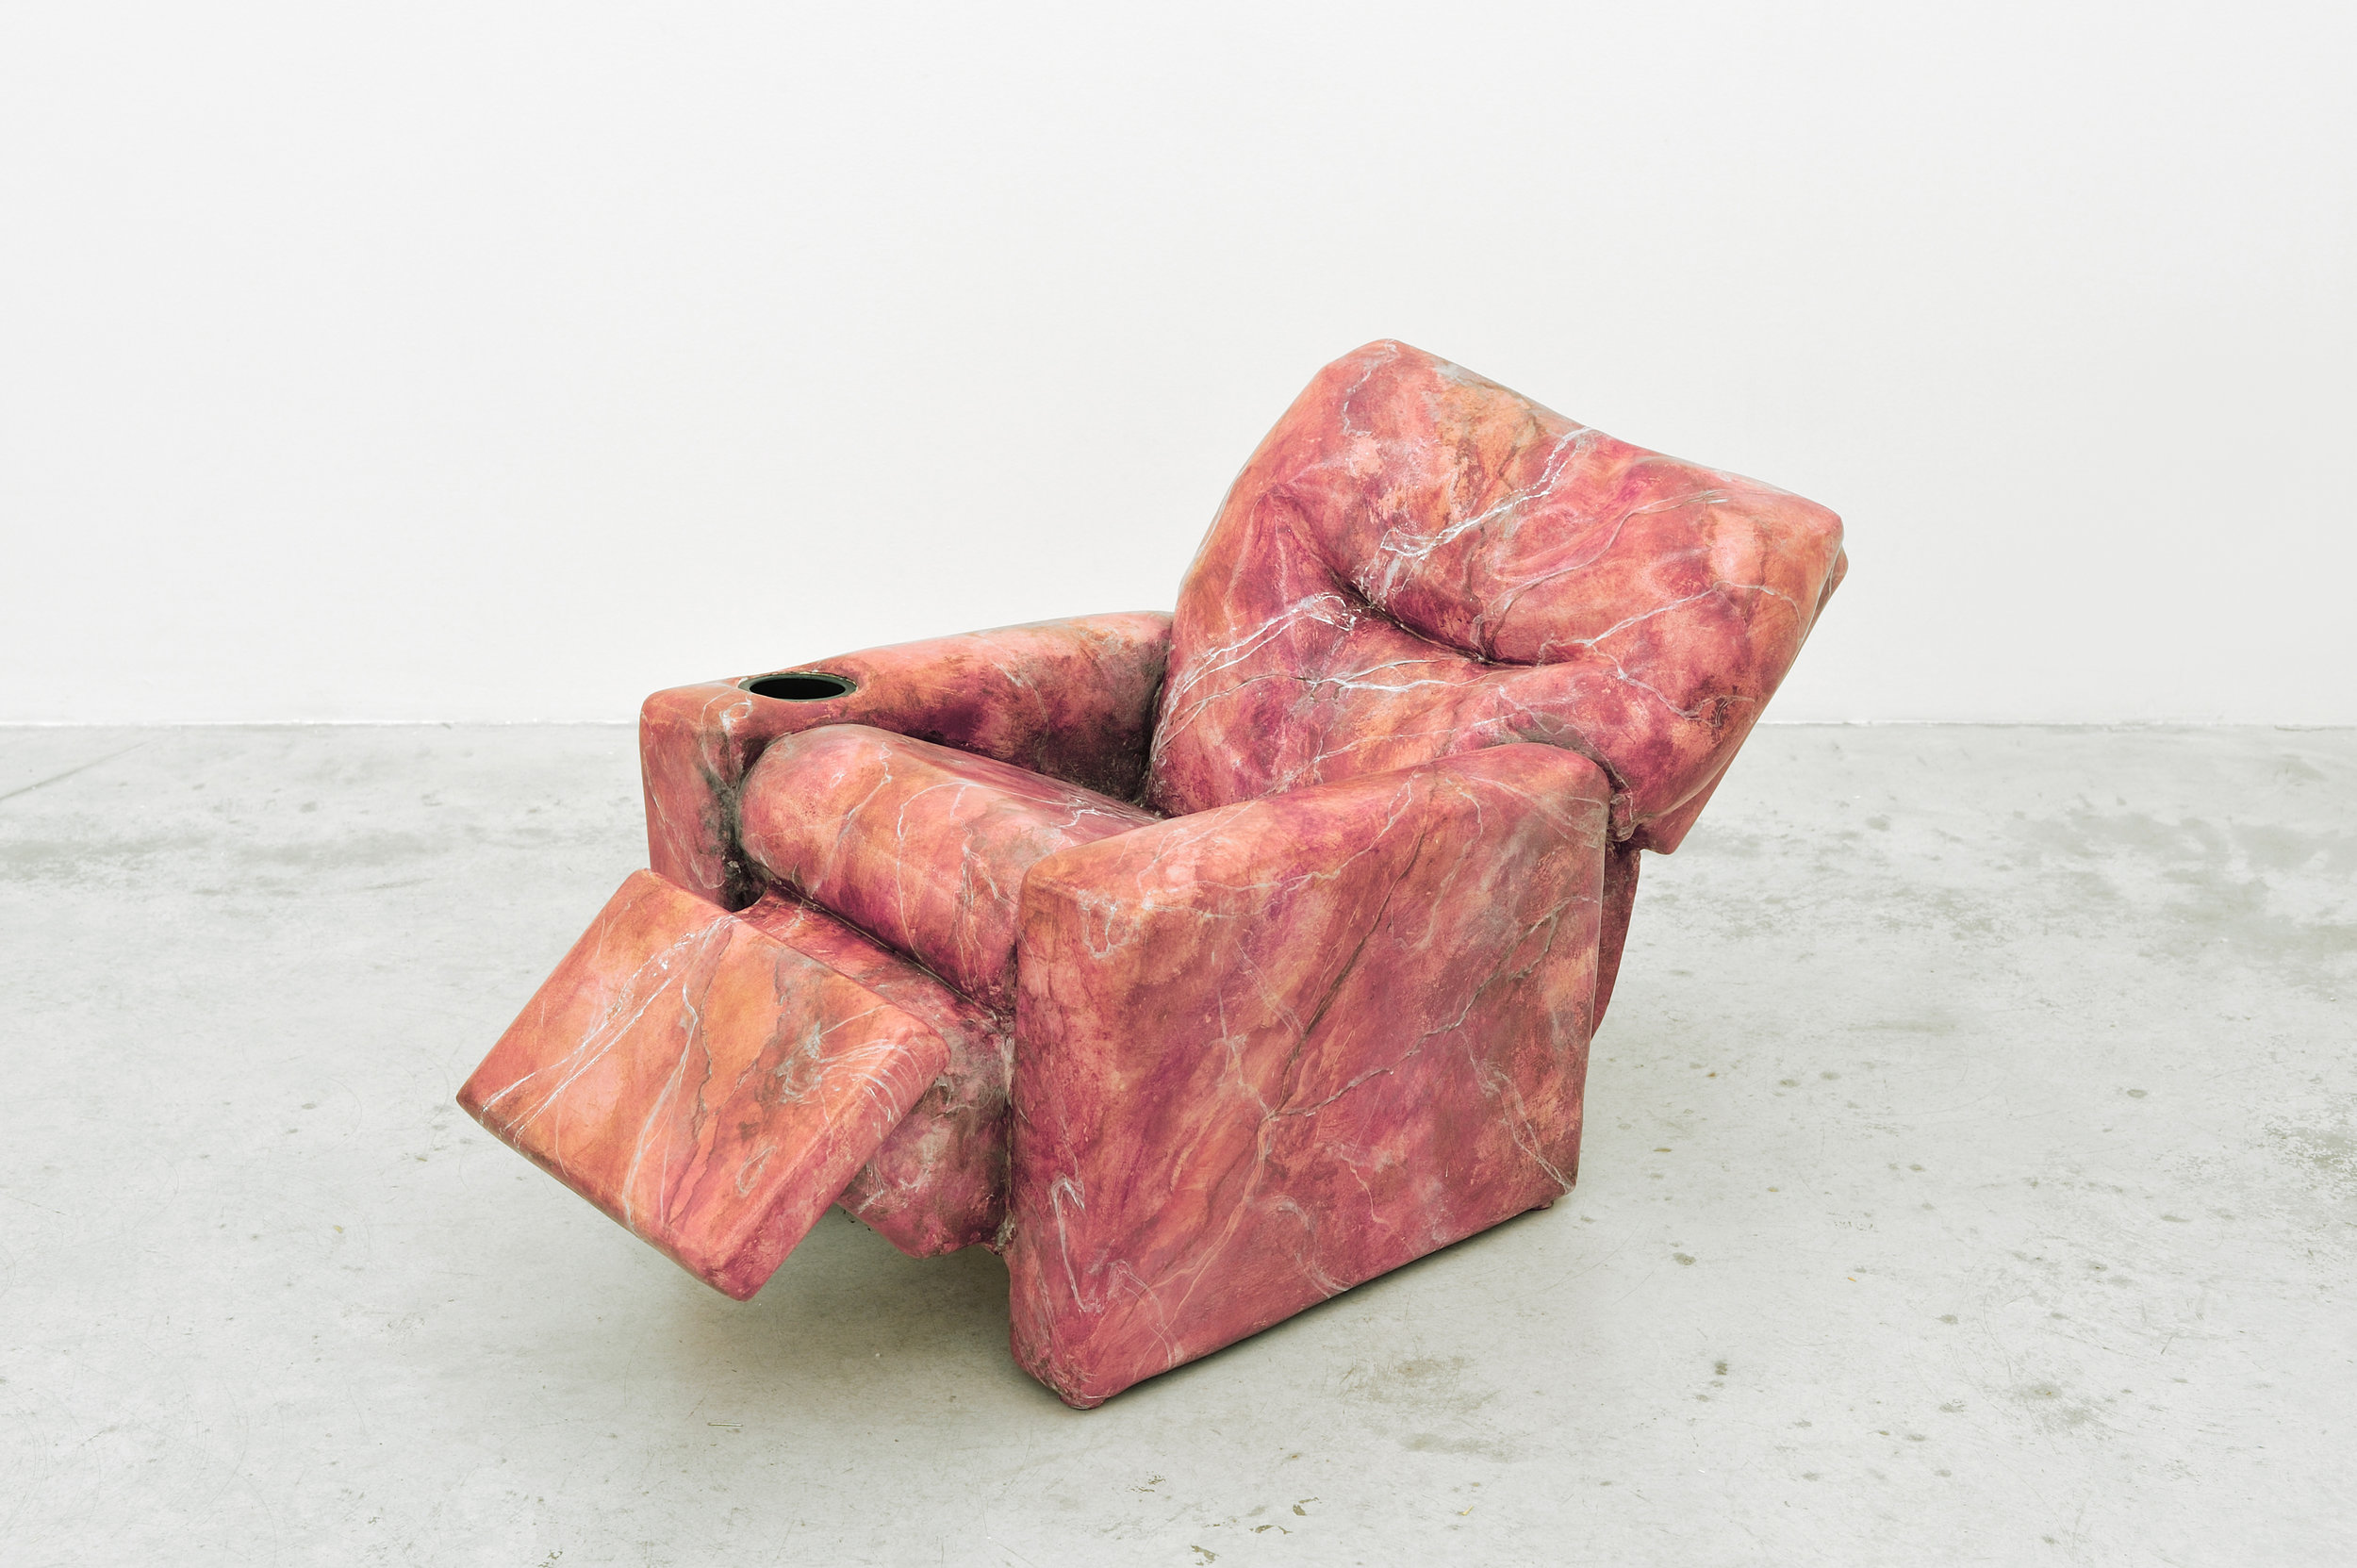 Like A Rock, 2014 found recliner, fiberglass, aqua resin, faux marble finish 61 x 56 x 106,7 cm - 24 x 22 x 42 inches